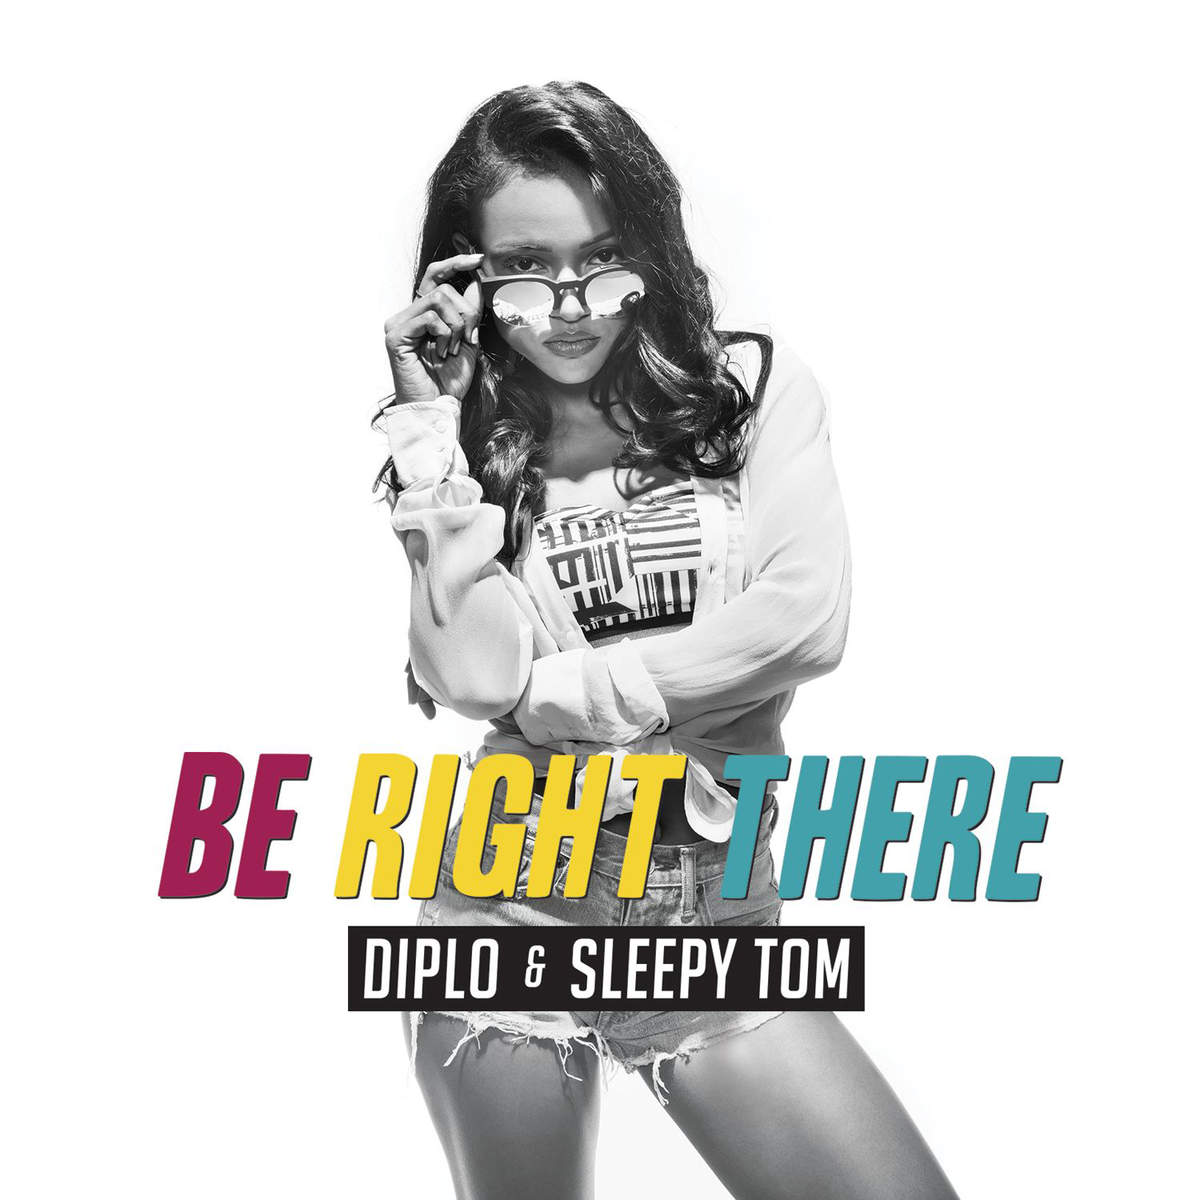 Diplo-Sleepy-Tom-Be-Right-There-2015-1200x1200-1